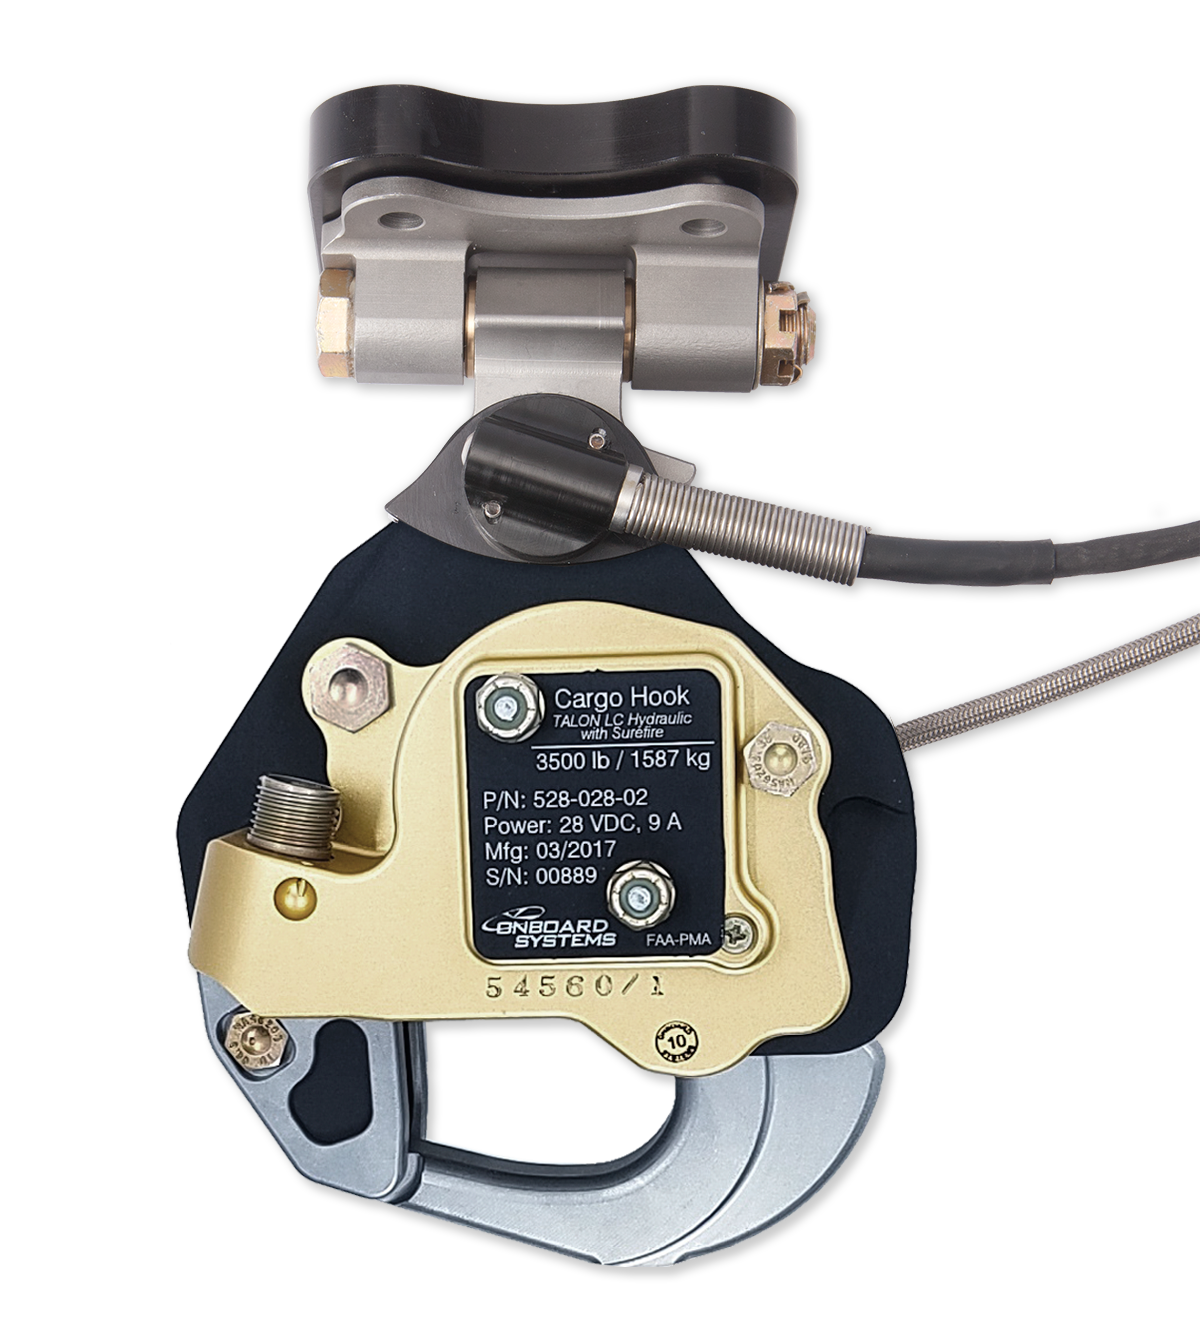 Onboard Systems MD500 Cargo Hook Kits with Surefire Release Technology Receive FAA Certification